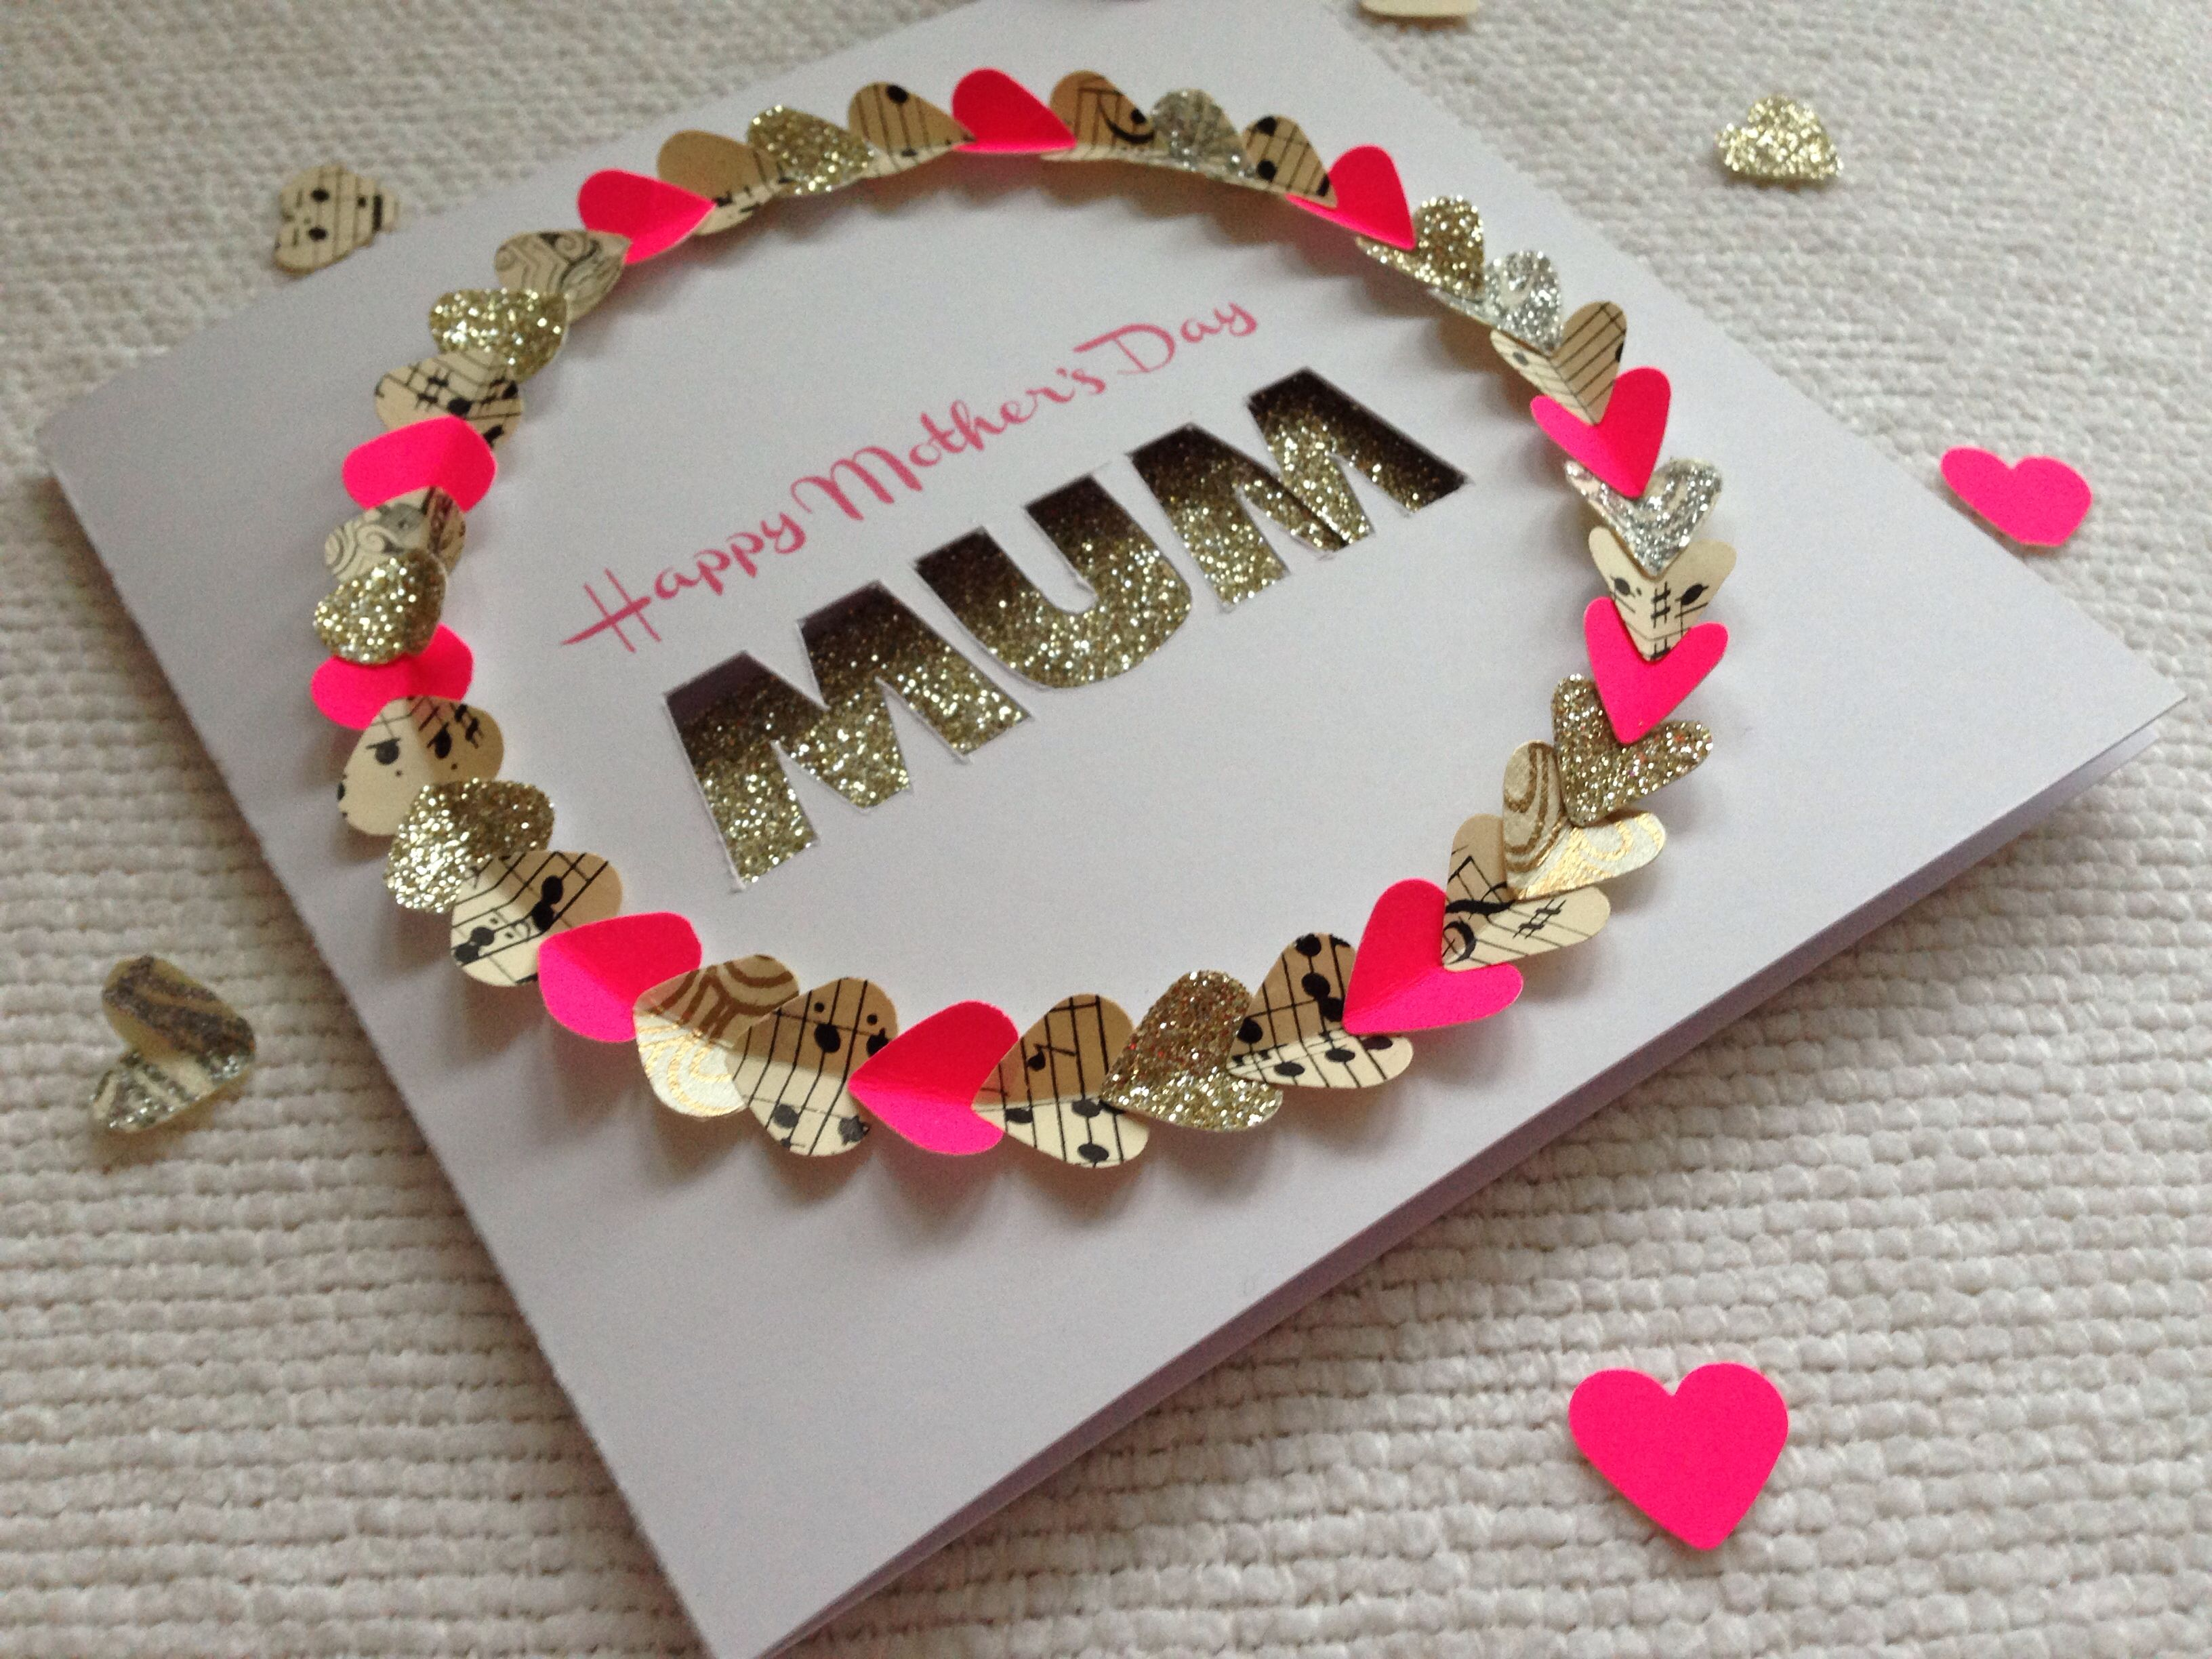 Handmade motherus day cards goldpink and vintage heart wreath